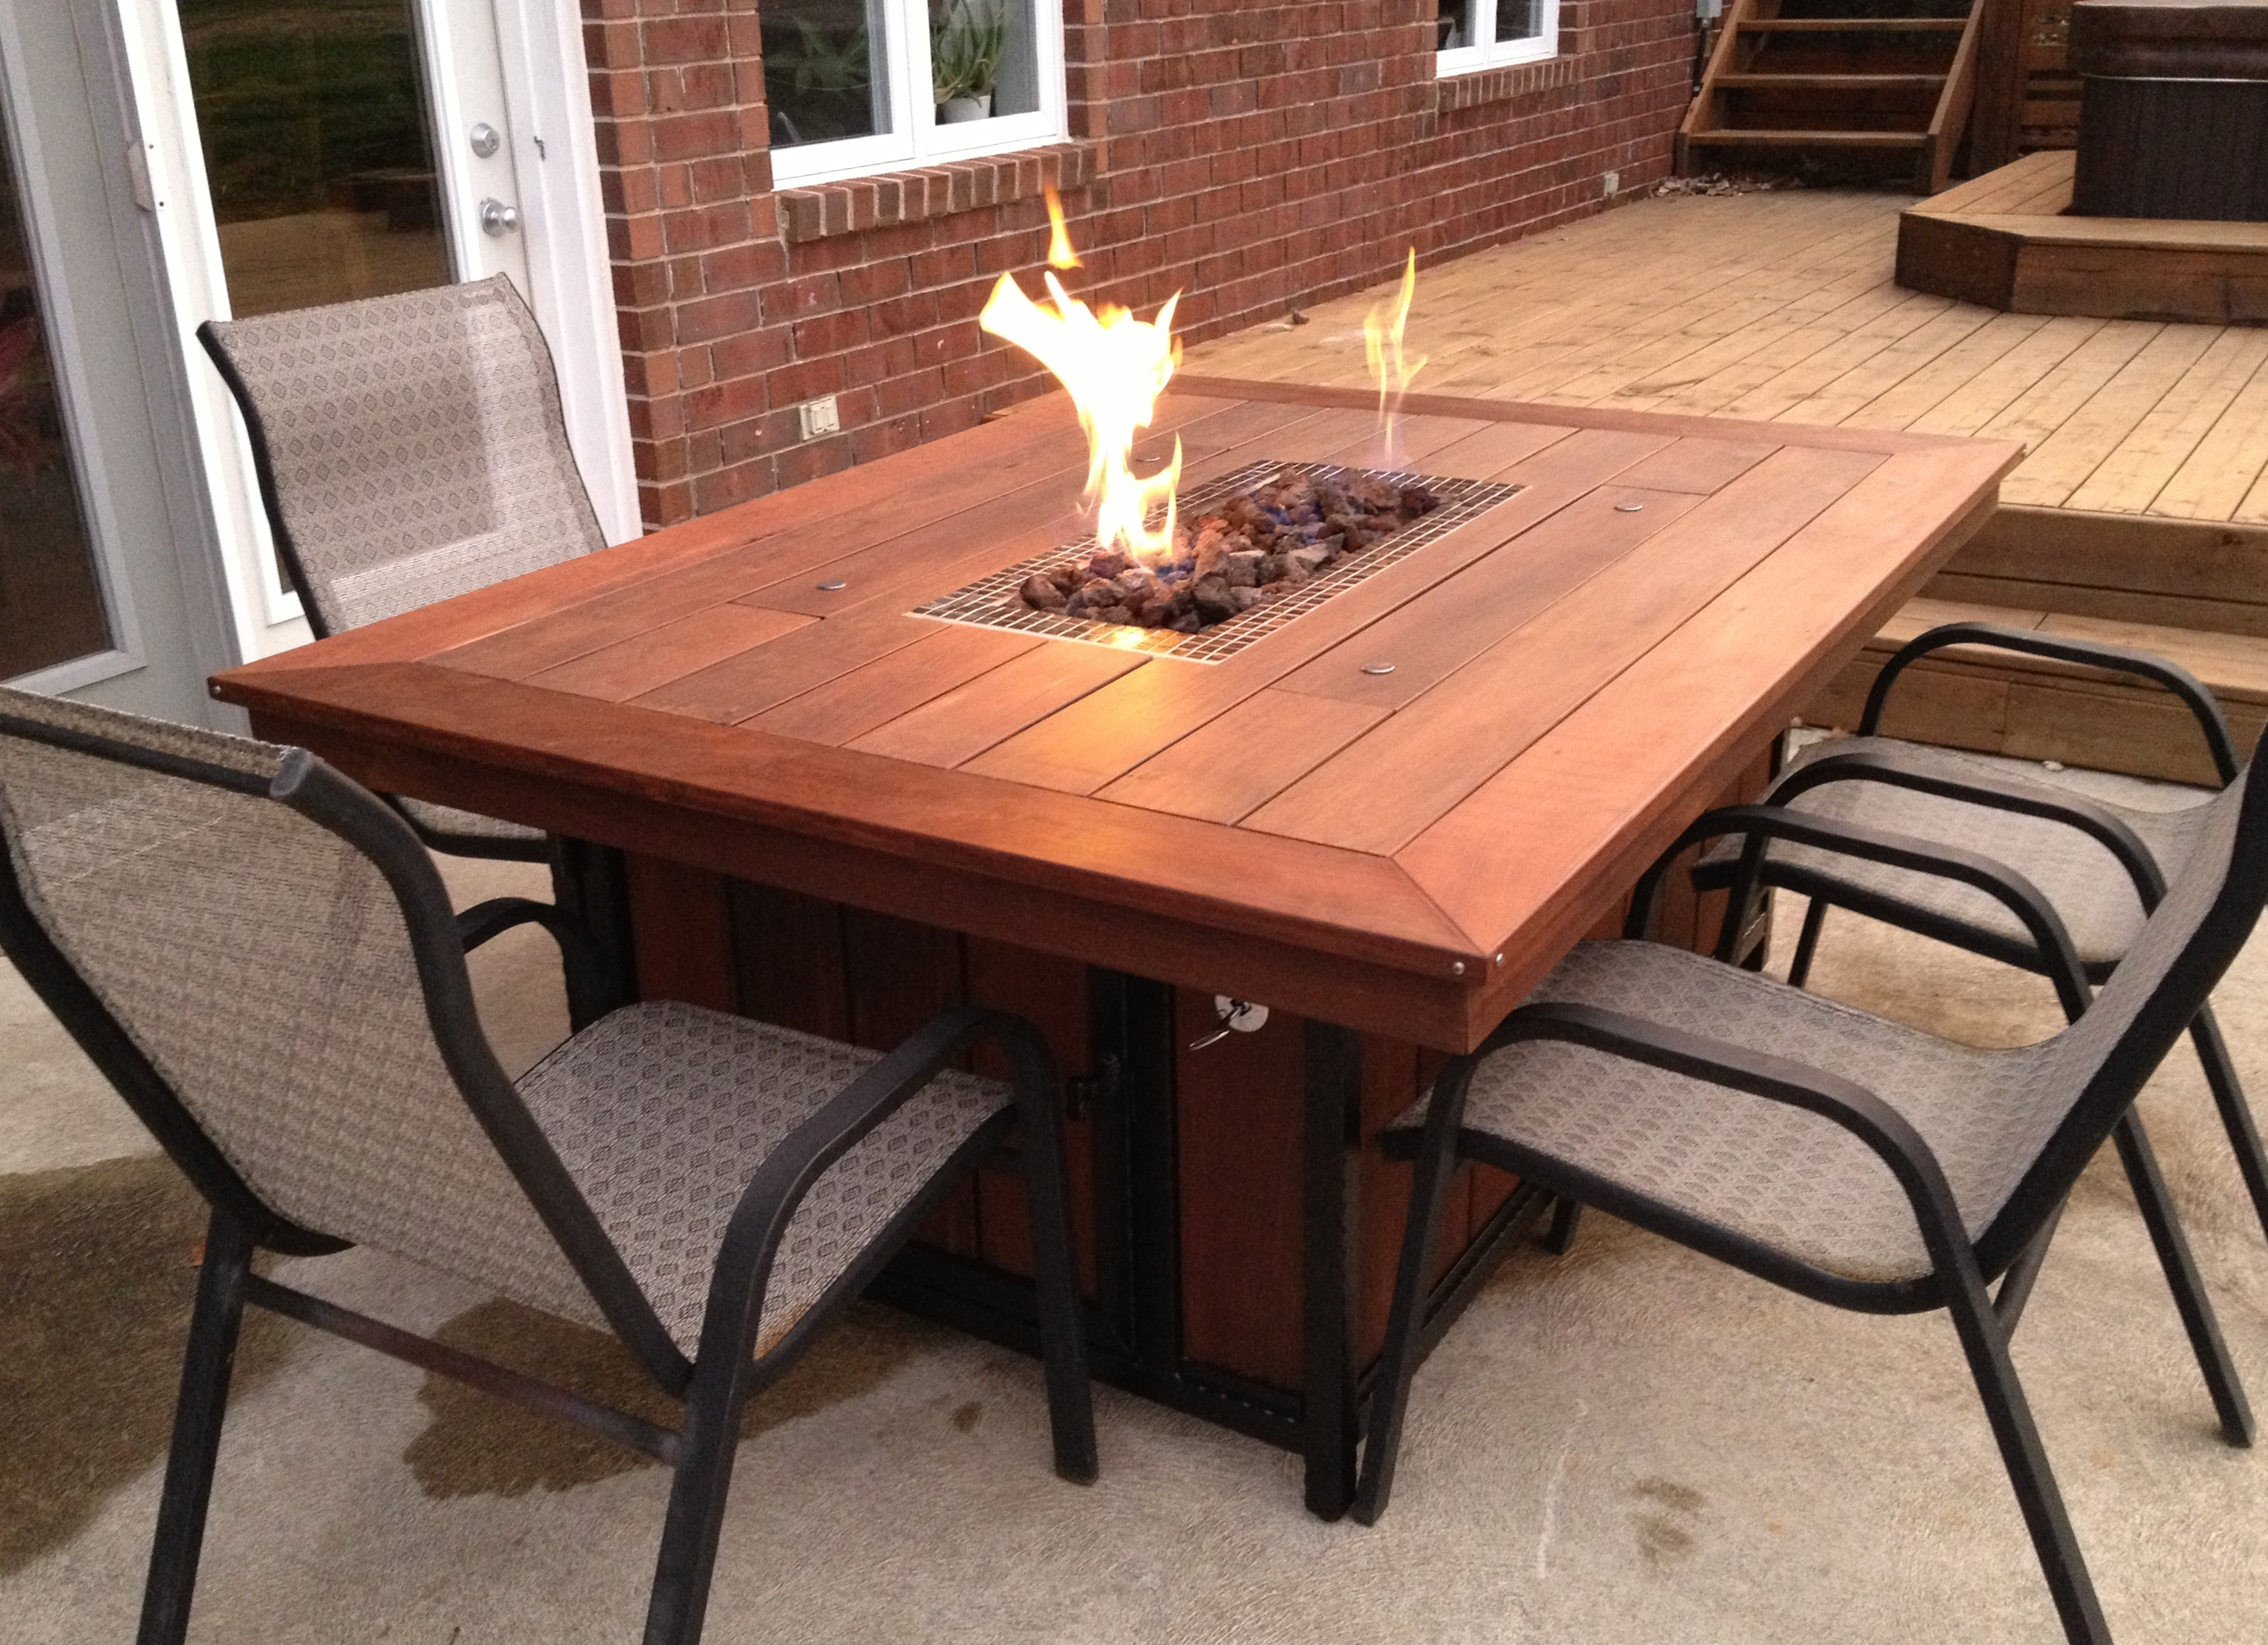 Fire Pit Patio Set at Home and Interior Design Ideas